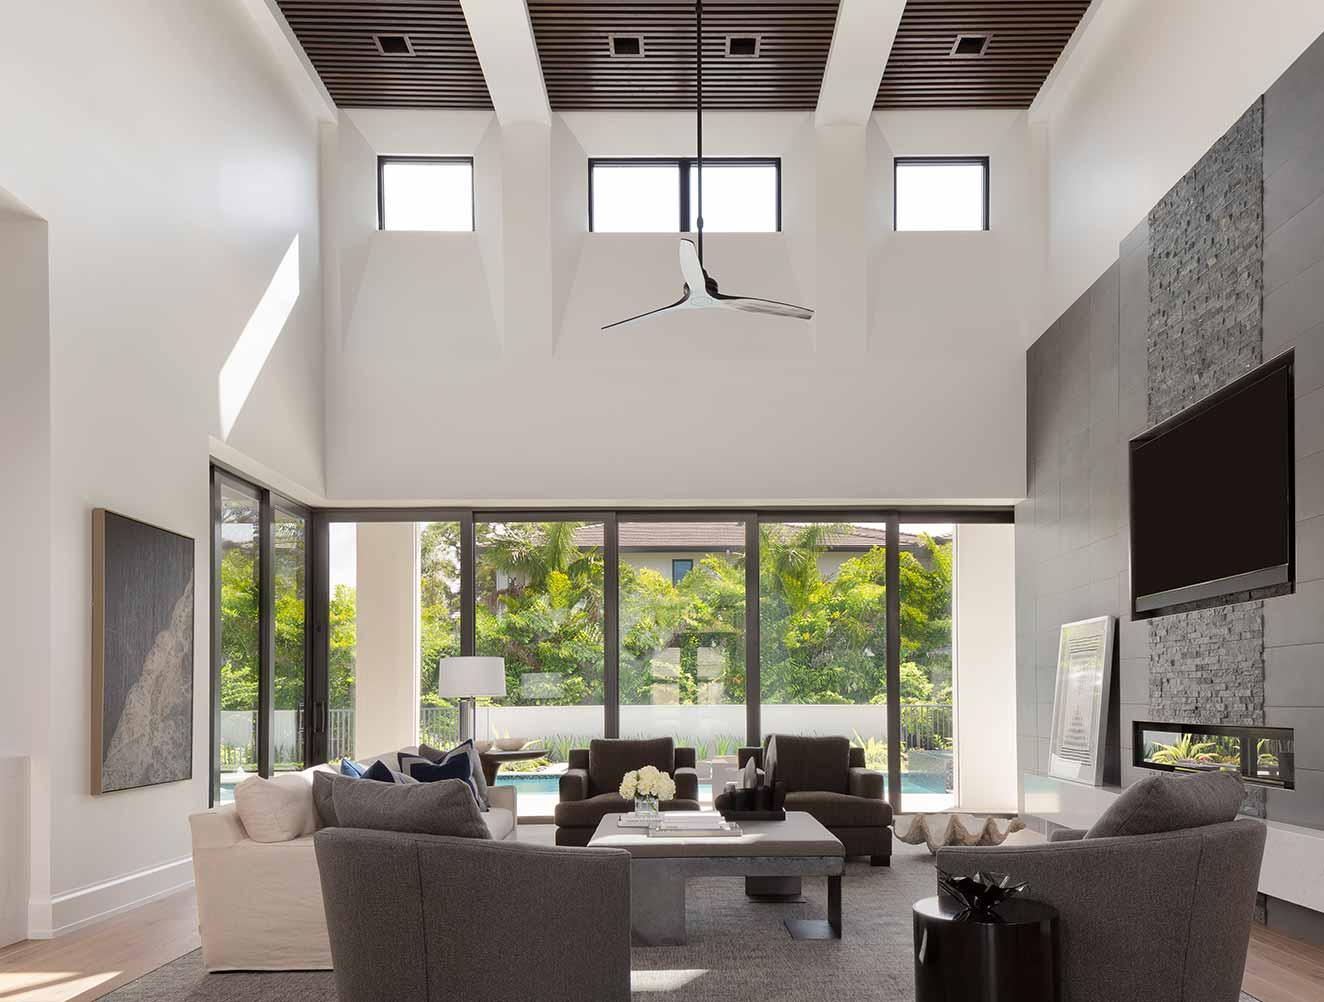 Tall Room Ceiling Design Collection in Naples Florida homes. Designed by Kukk Architecture & Design Naples.